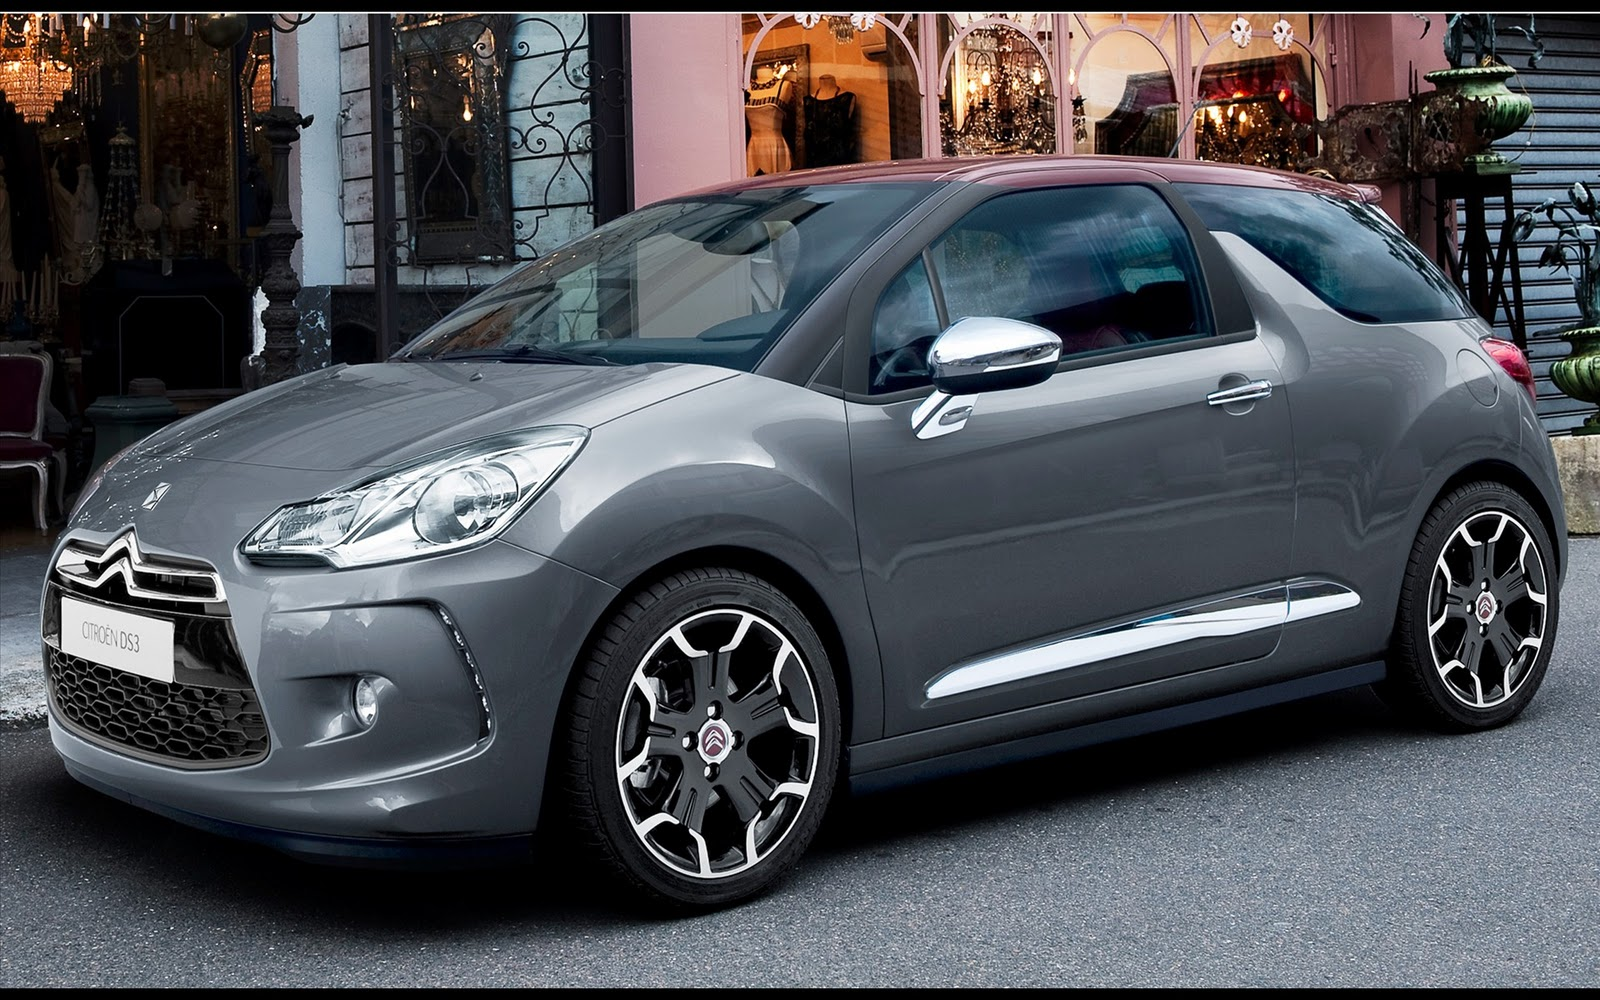 car site news car review car picture and more 2012 citroen ds3. Black Bedroom Furniture Sets. Home Design Ideas